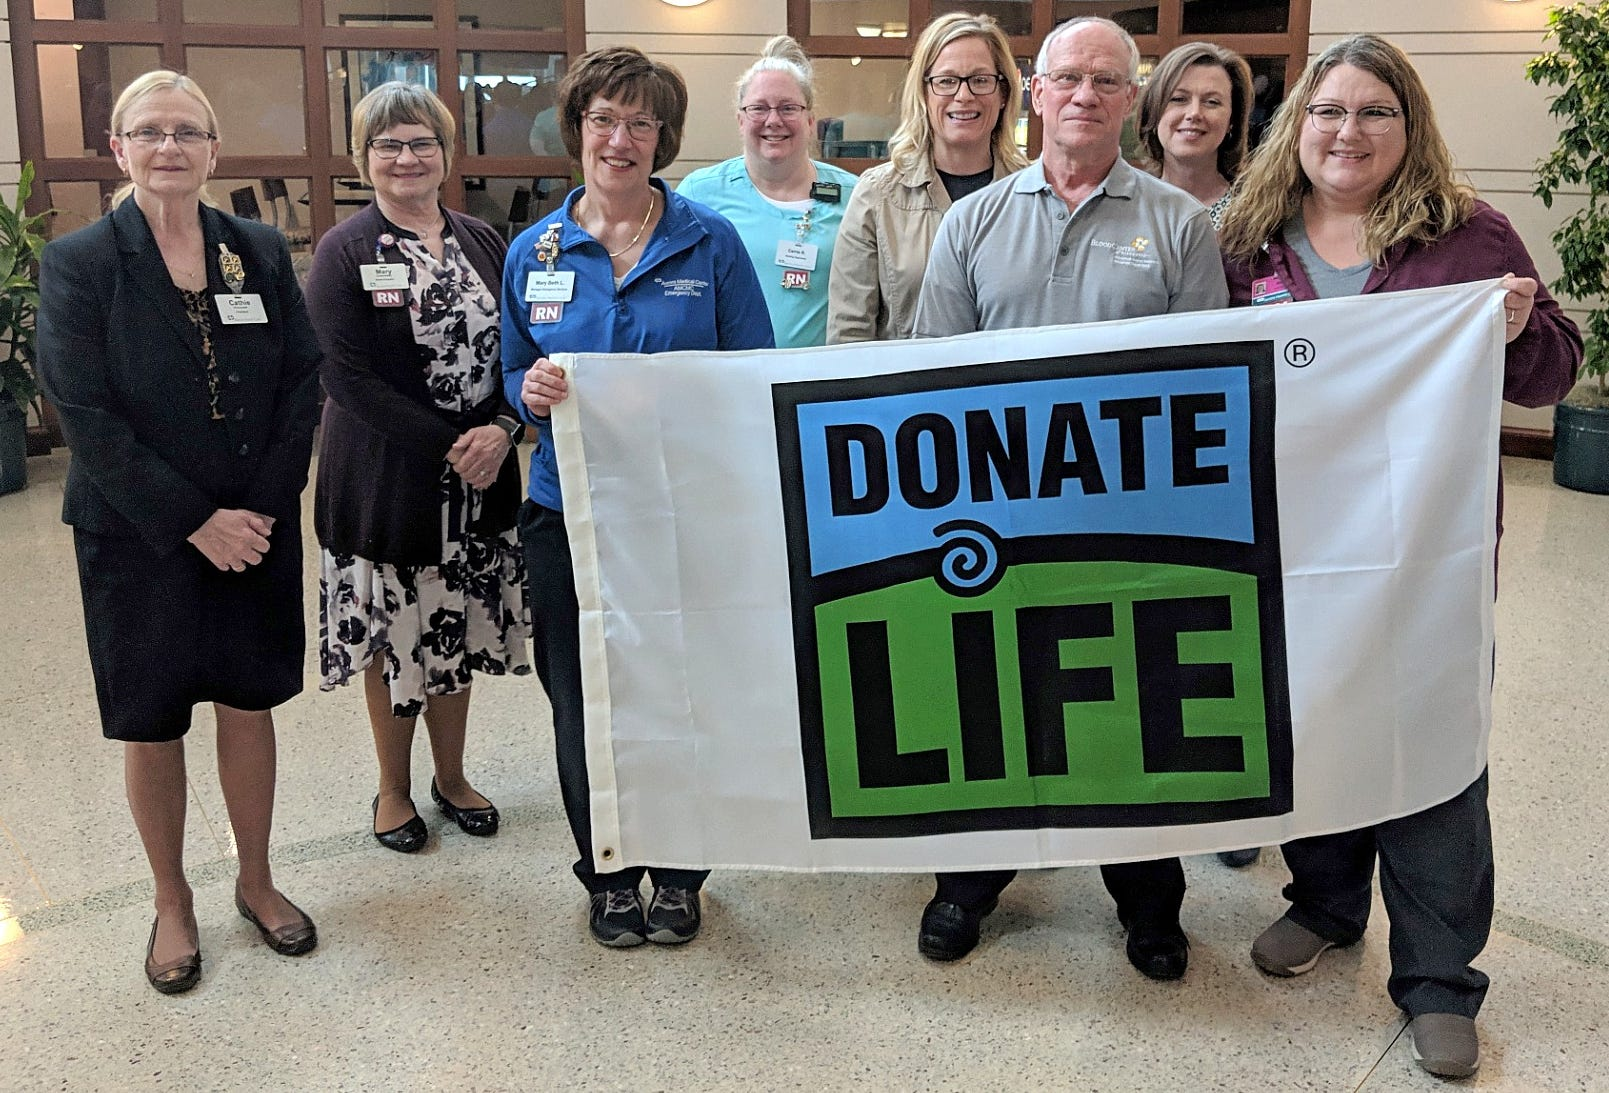 At 10:08 a.m. Monday, Aurora Medical Center in Manitowoc County joined 15 Aurora Health Care sites across the state in conducting a flag-raising ceremony and moment of silence to promote organ, tissue and eye donation as well as honor donors and their families.